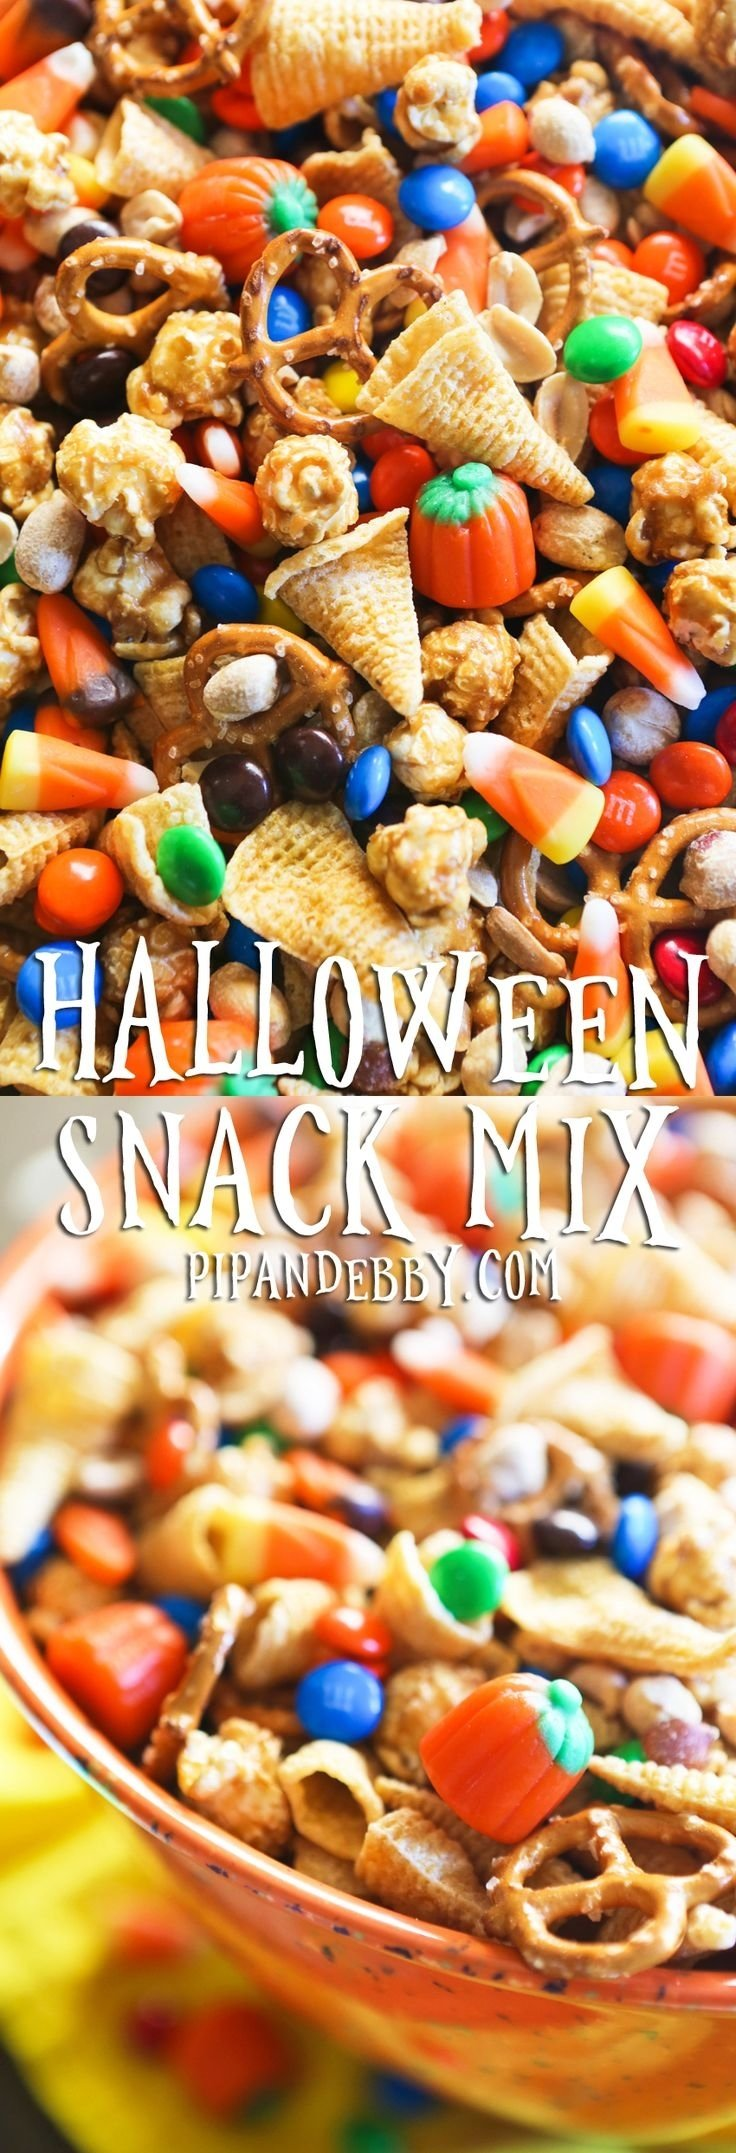 10 Most Popular Halloween Snack Ideas For Adults 360 best halloween classroom crafting ideas treats images on 1 2020